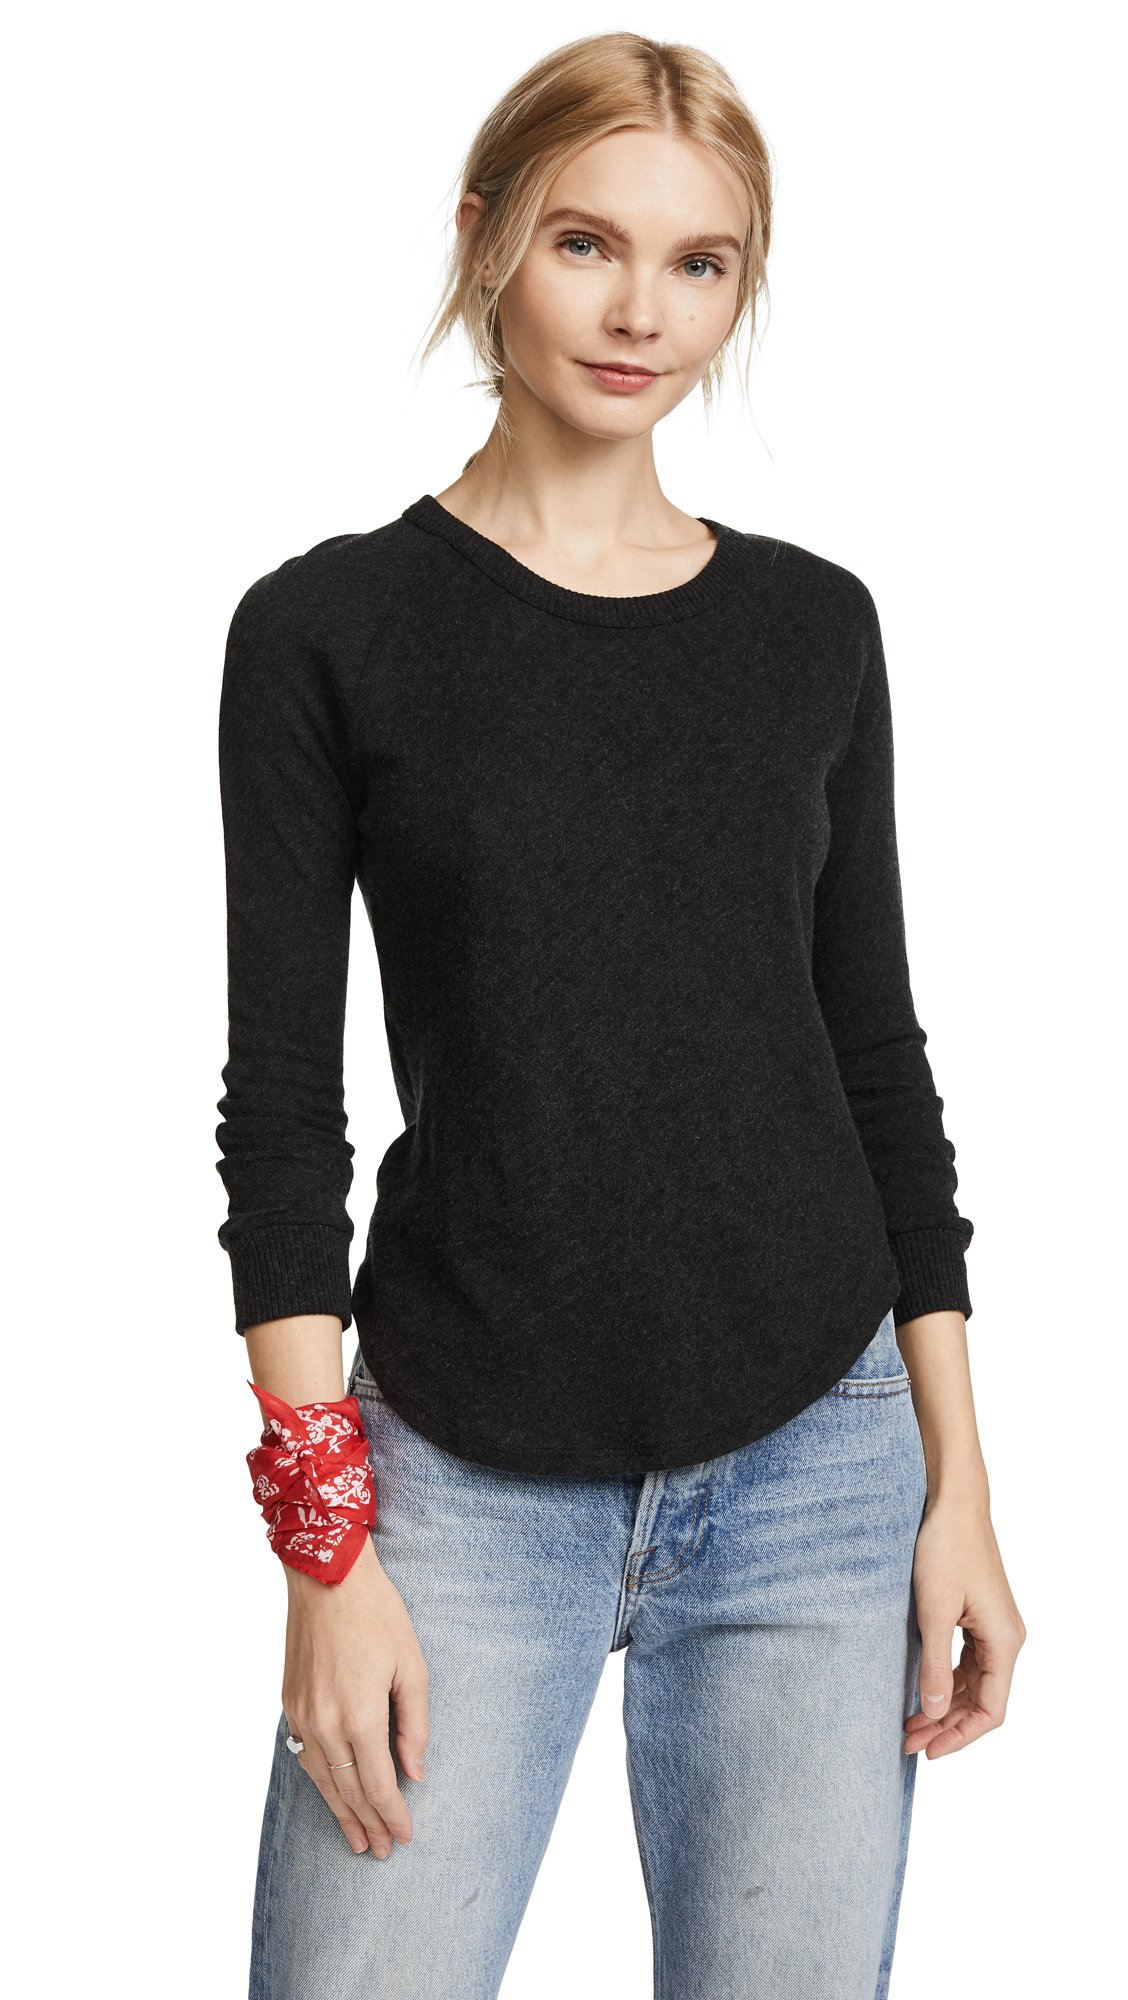 Enza Costa Women's Cashmere Cuffed Baseball Tee, Charcoal, Small